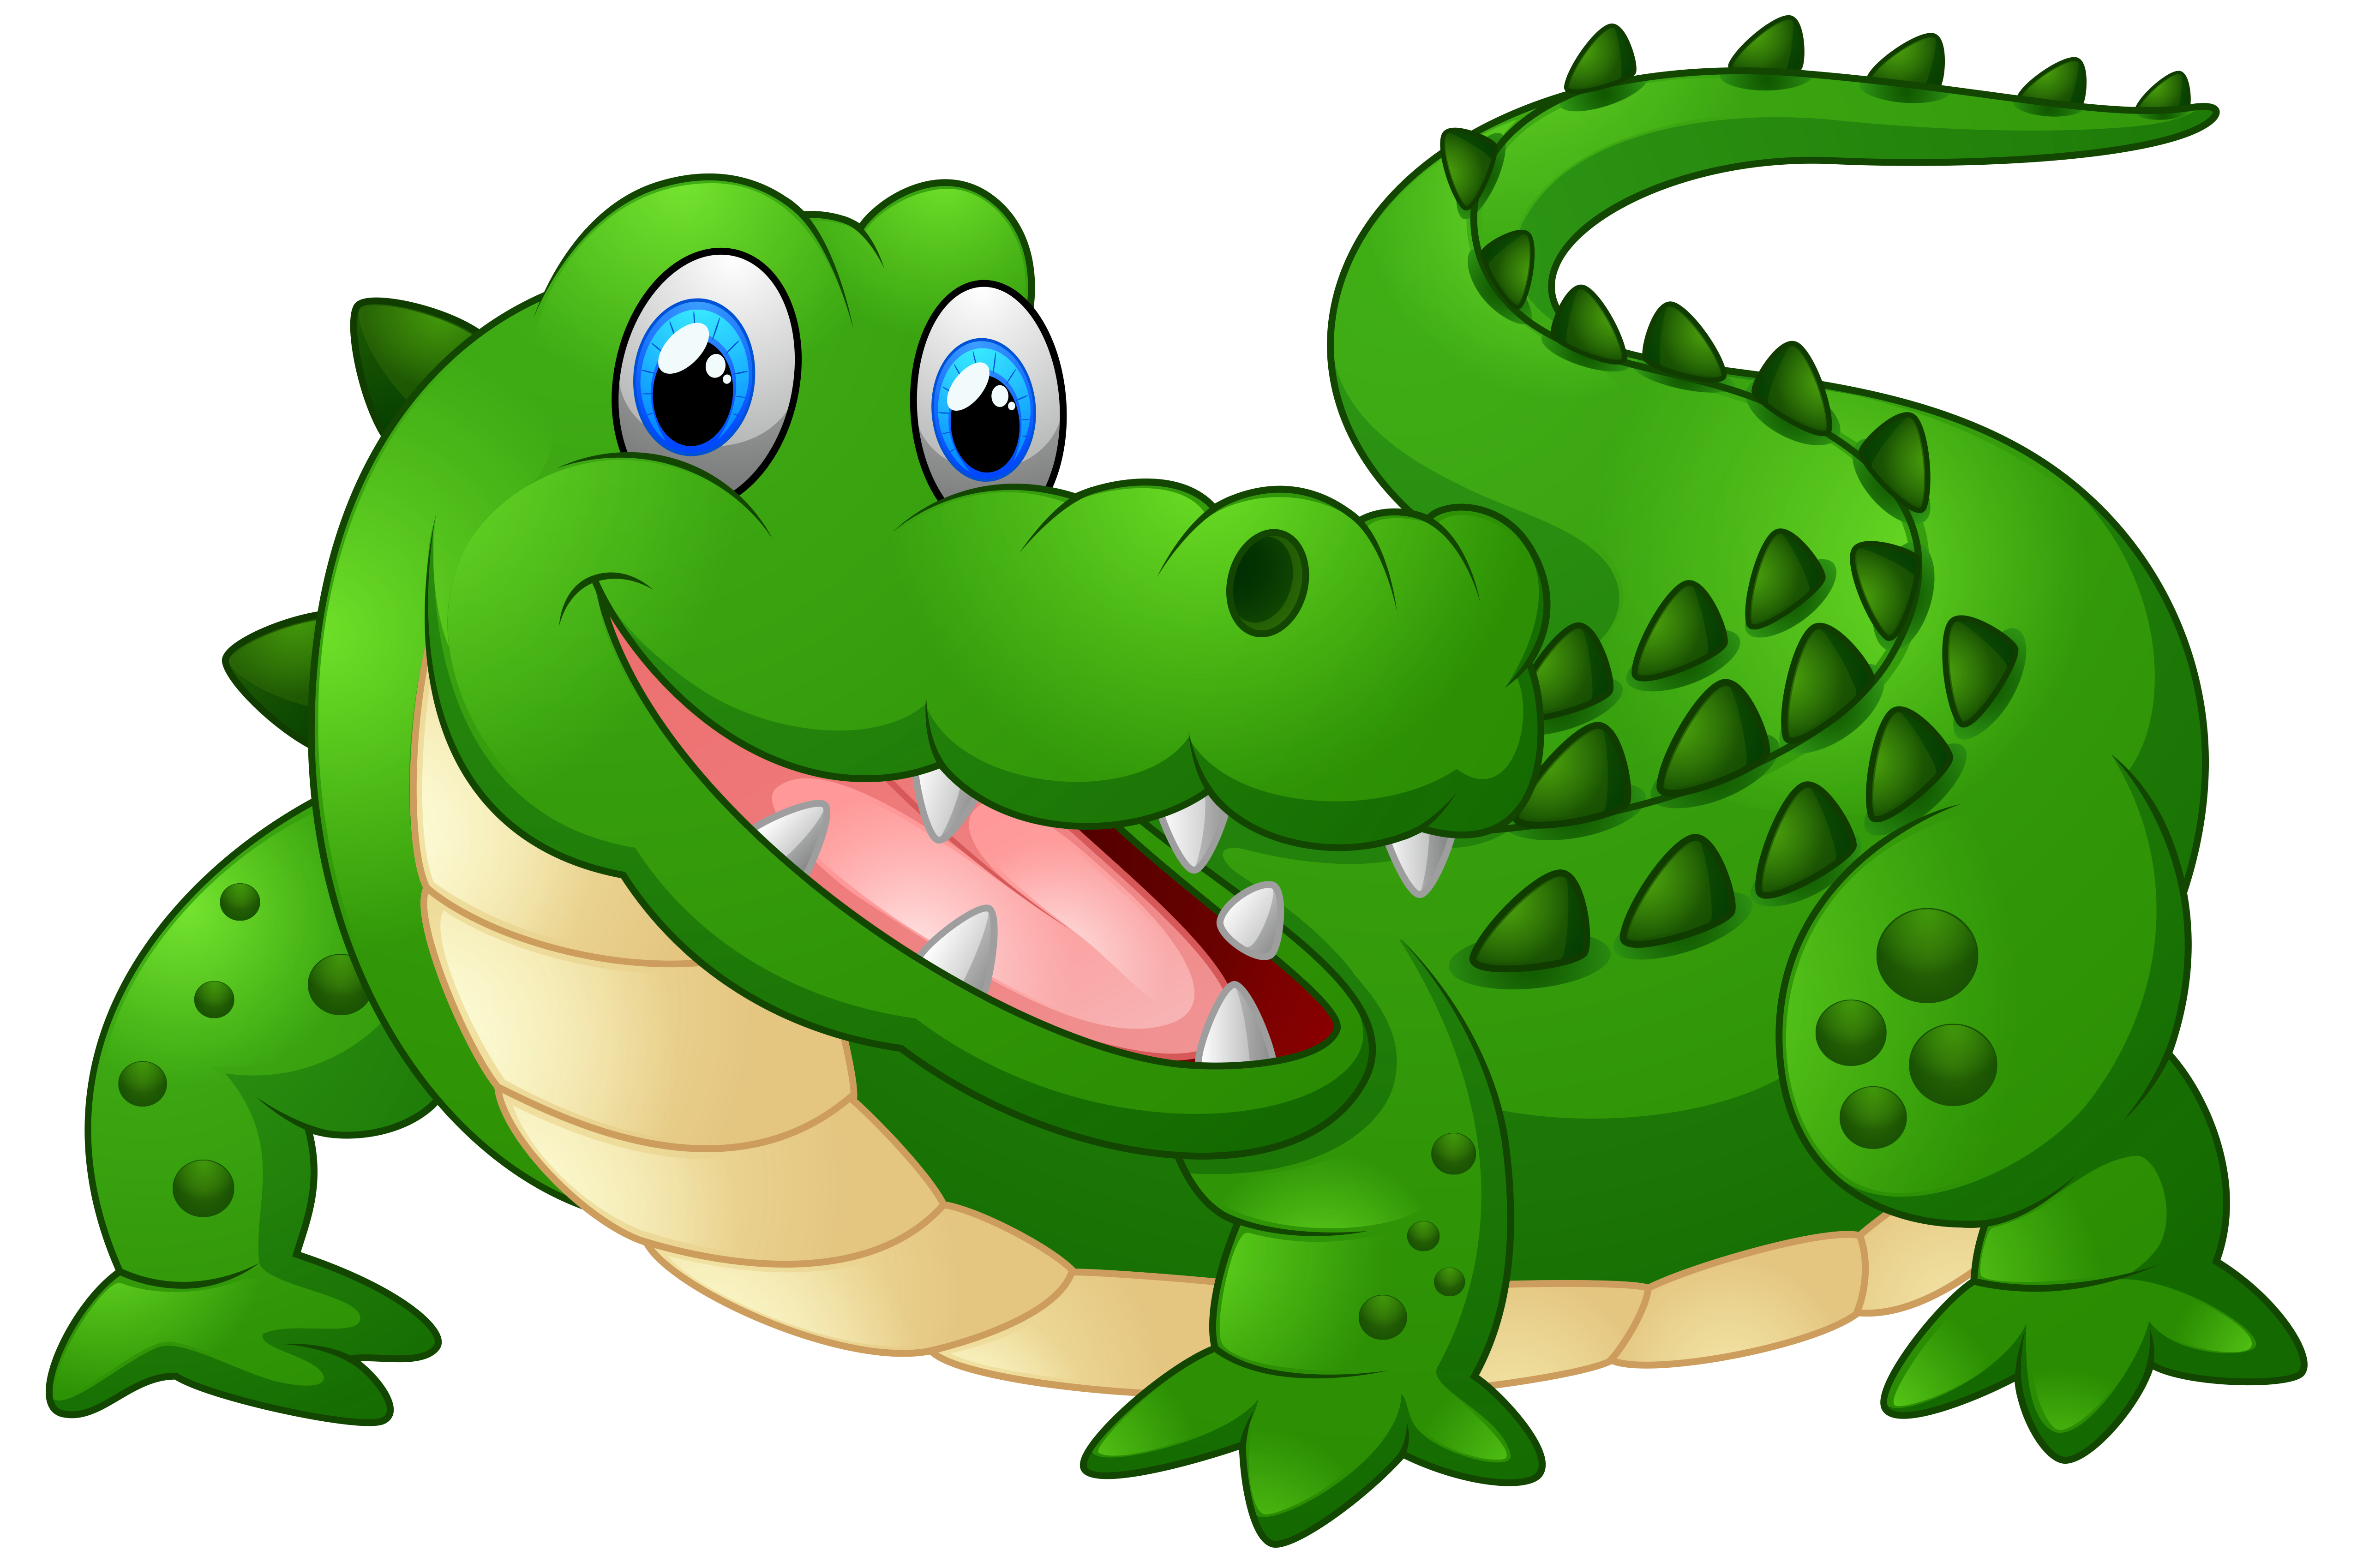 Crocodile clipart #6, Download drawings